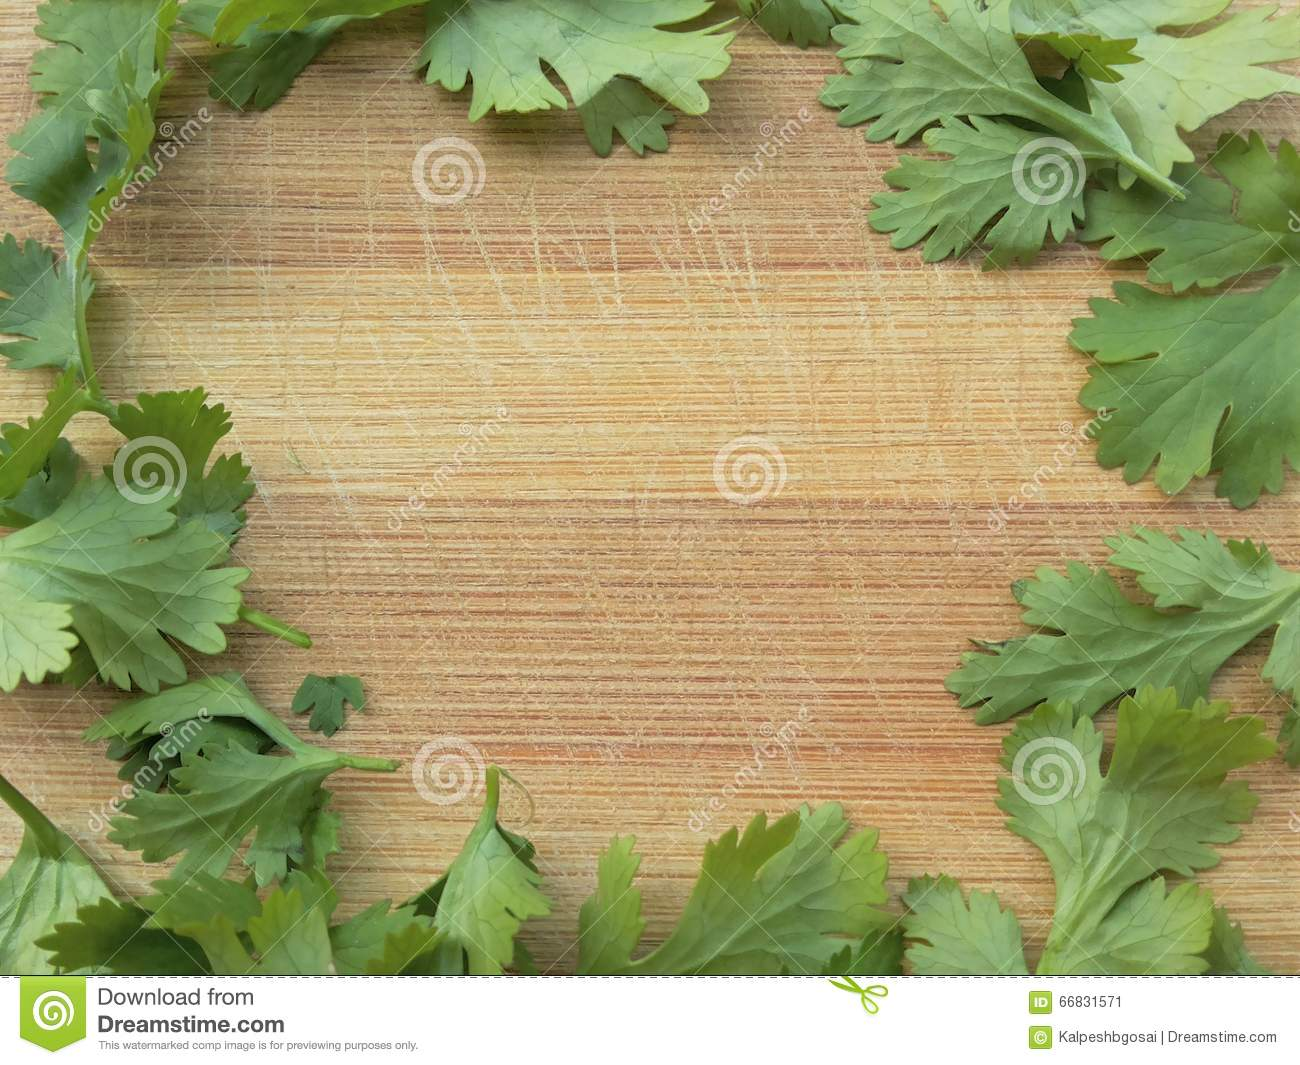 Coriander Leaves Frame On Wooden Background Stock Photo